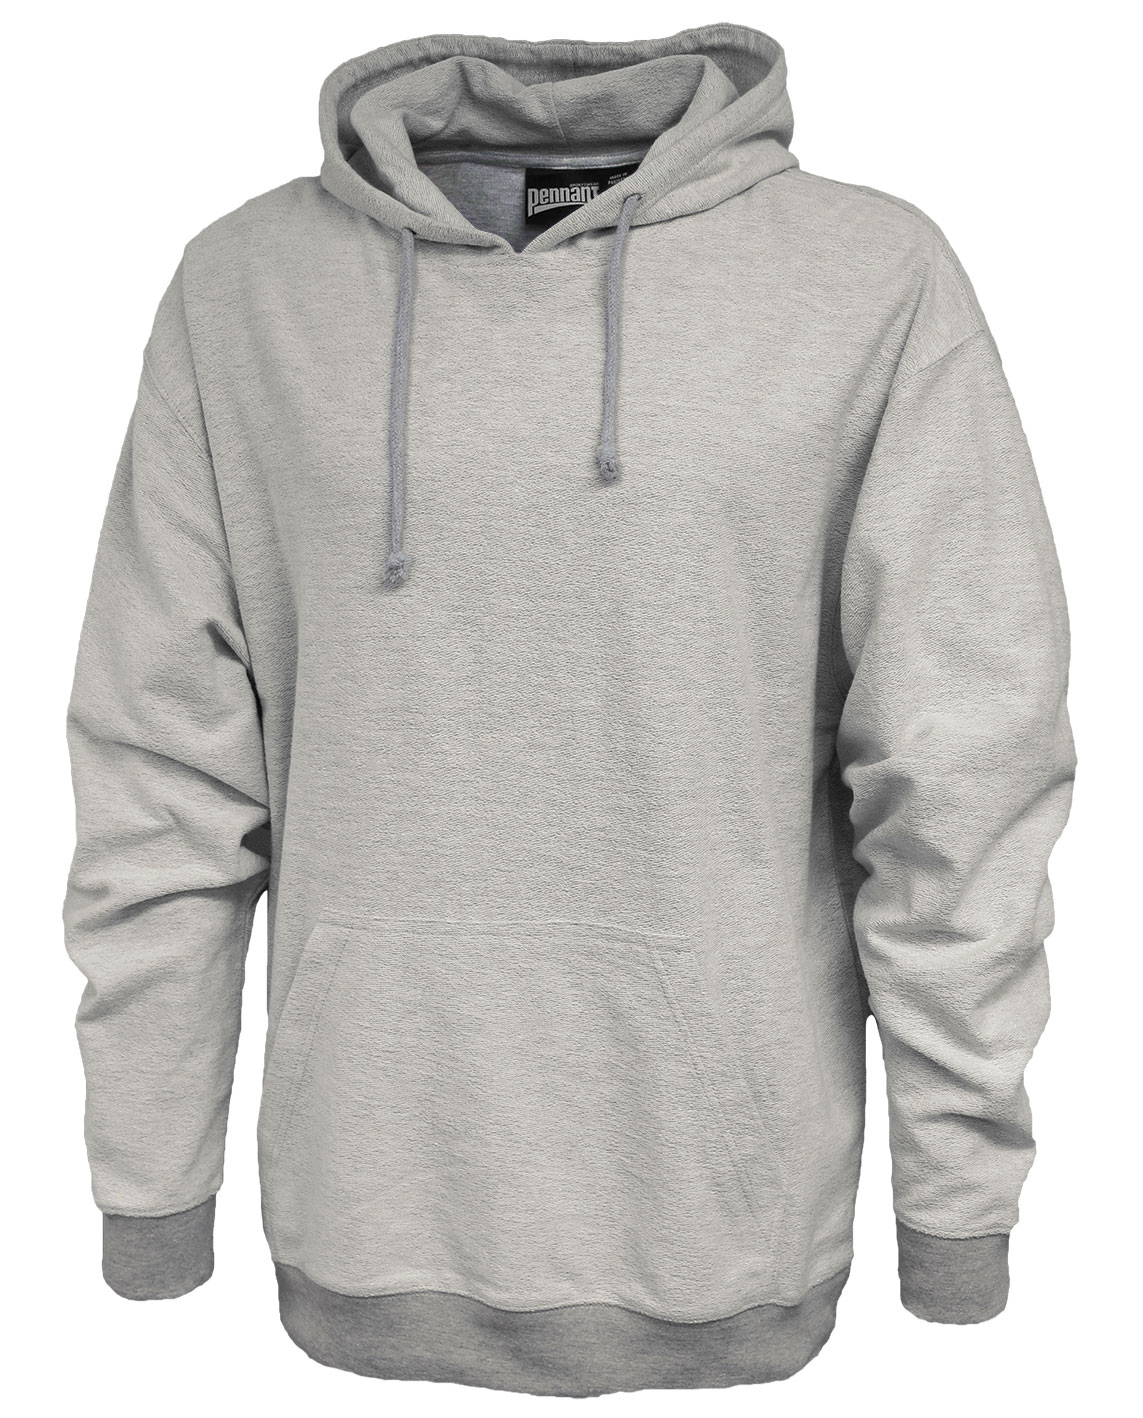 Adult Inside-Out Fleece Hoodie